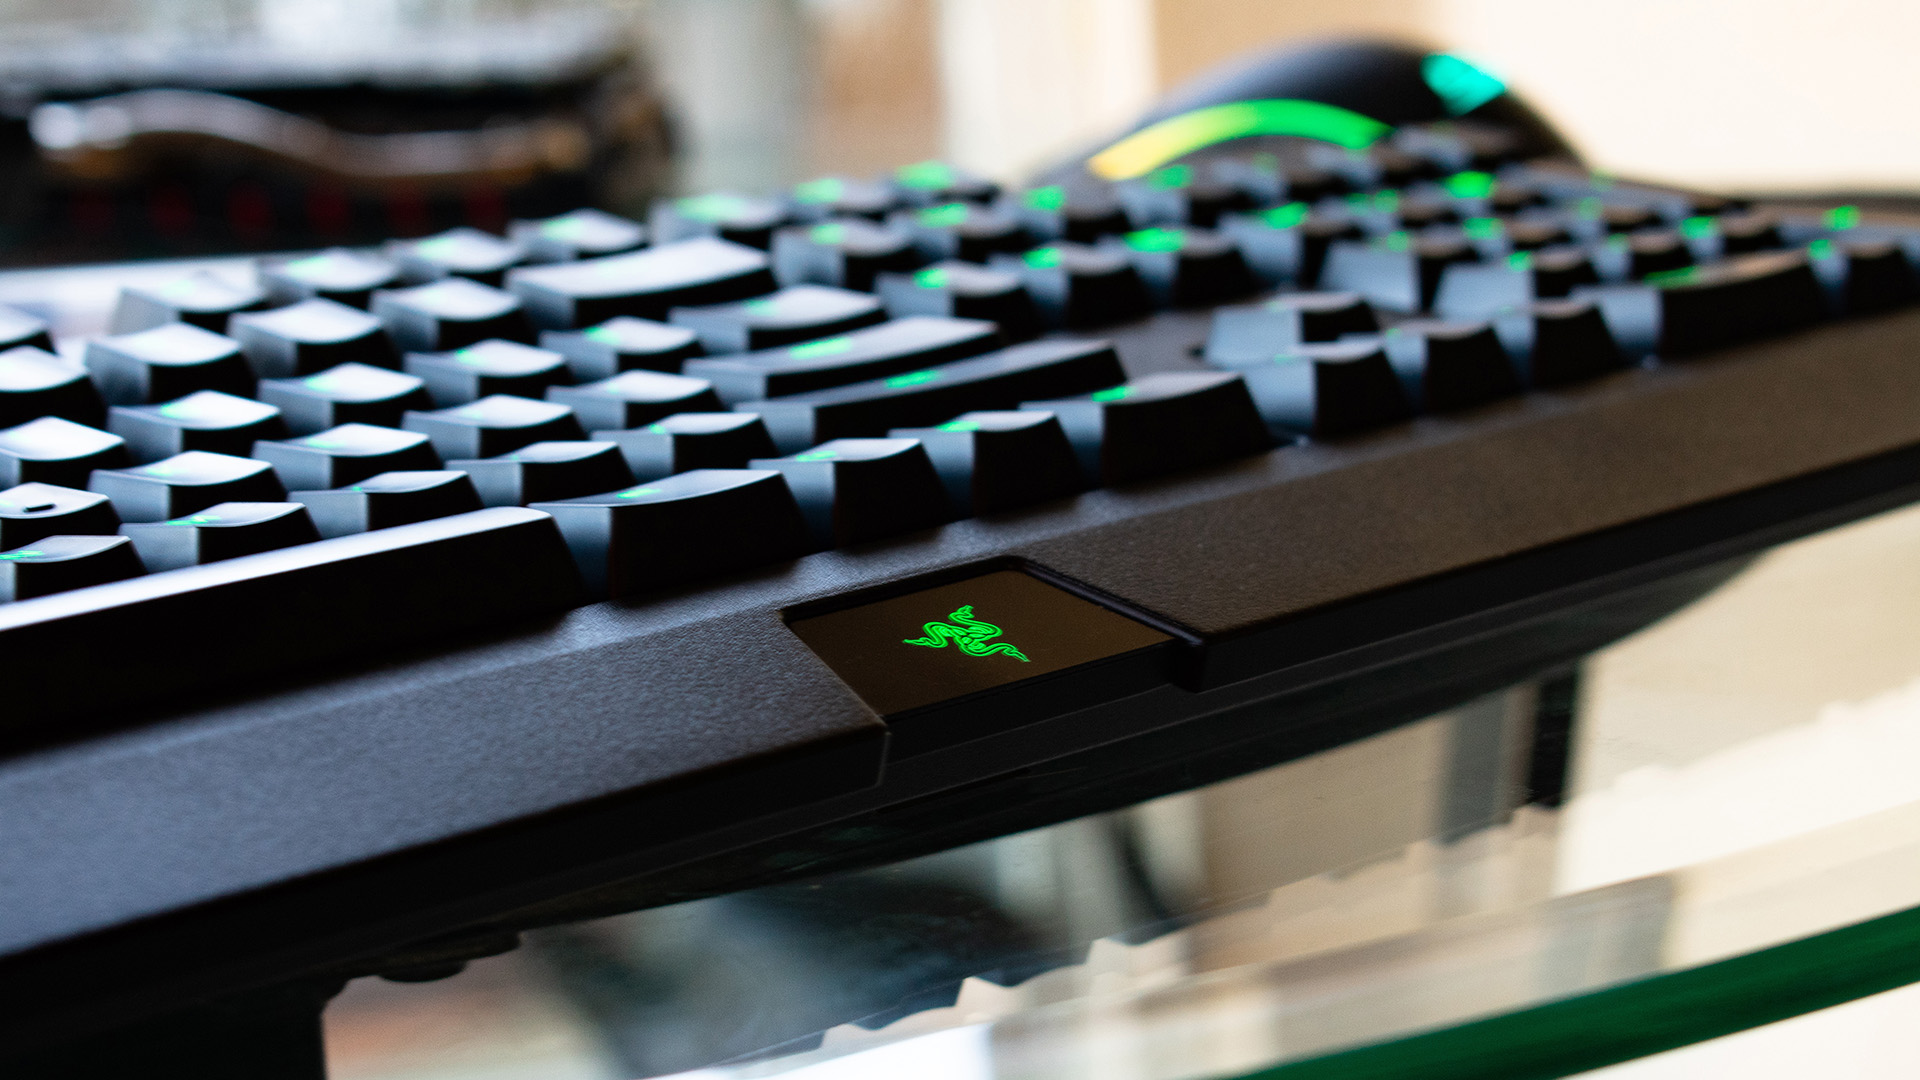 dd83ce6bcfa We get that not every keyboard out there needs RGB lighting and you can set  some pretty dazzling effects with its green LEDs, but Razer ...